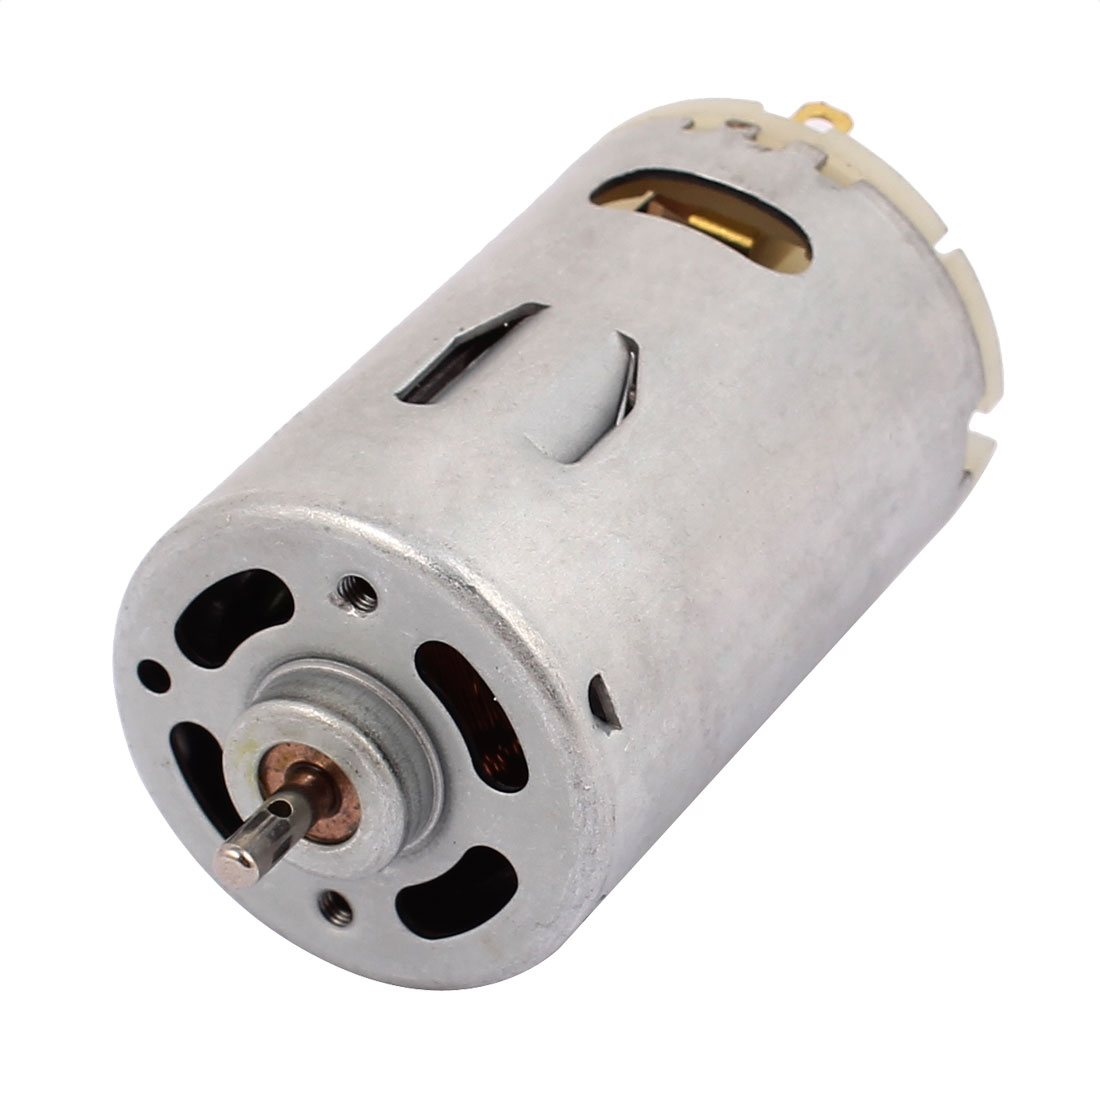 DC 6V 6300RPM Strong Magnet High Speed Micro DC Motor for Electronic Toy